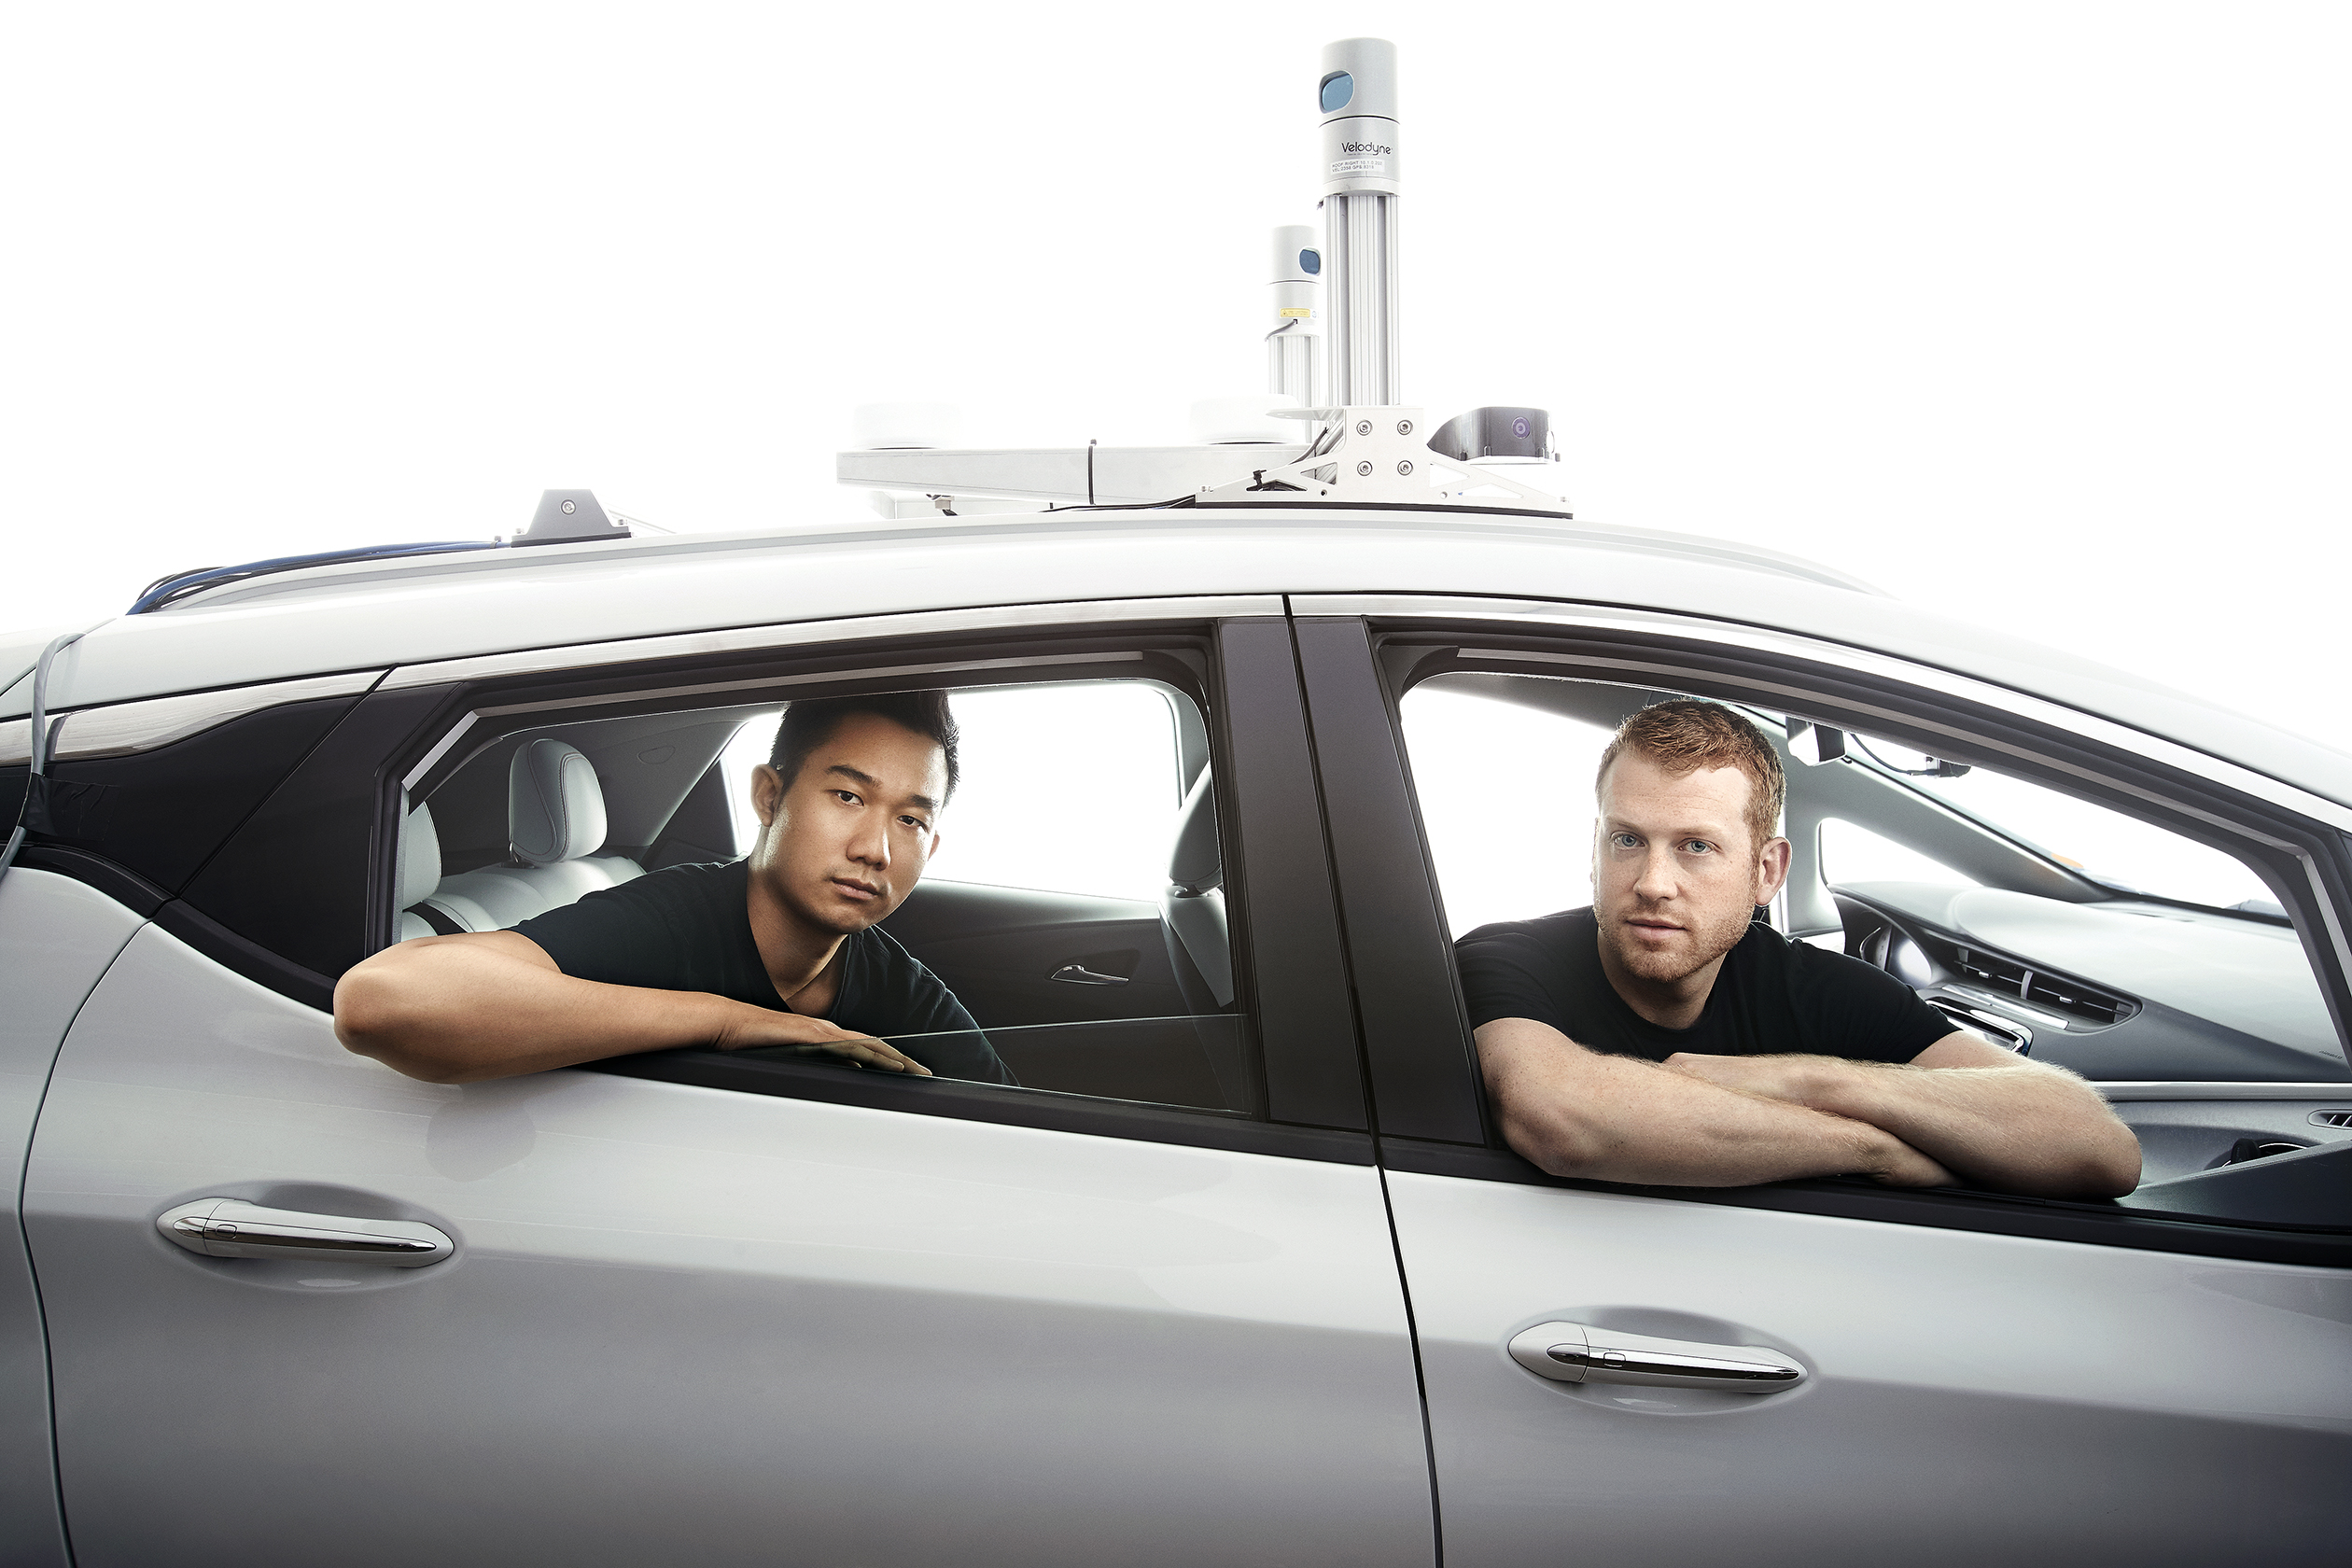 Cruise COO Daniel Kan (left) and CEO Kyle Vogt (right) in a Chevrolet self-driving-car prototype.